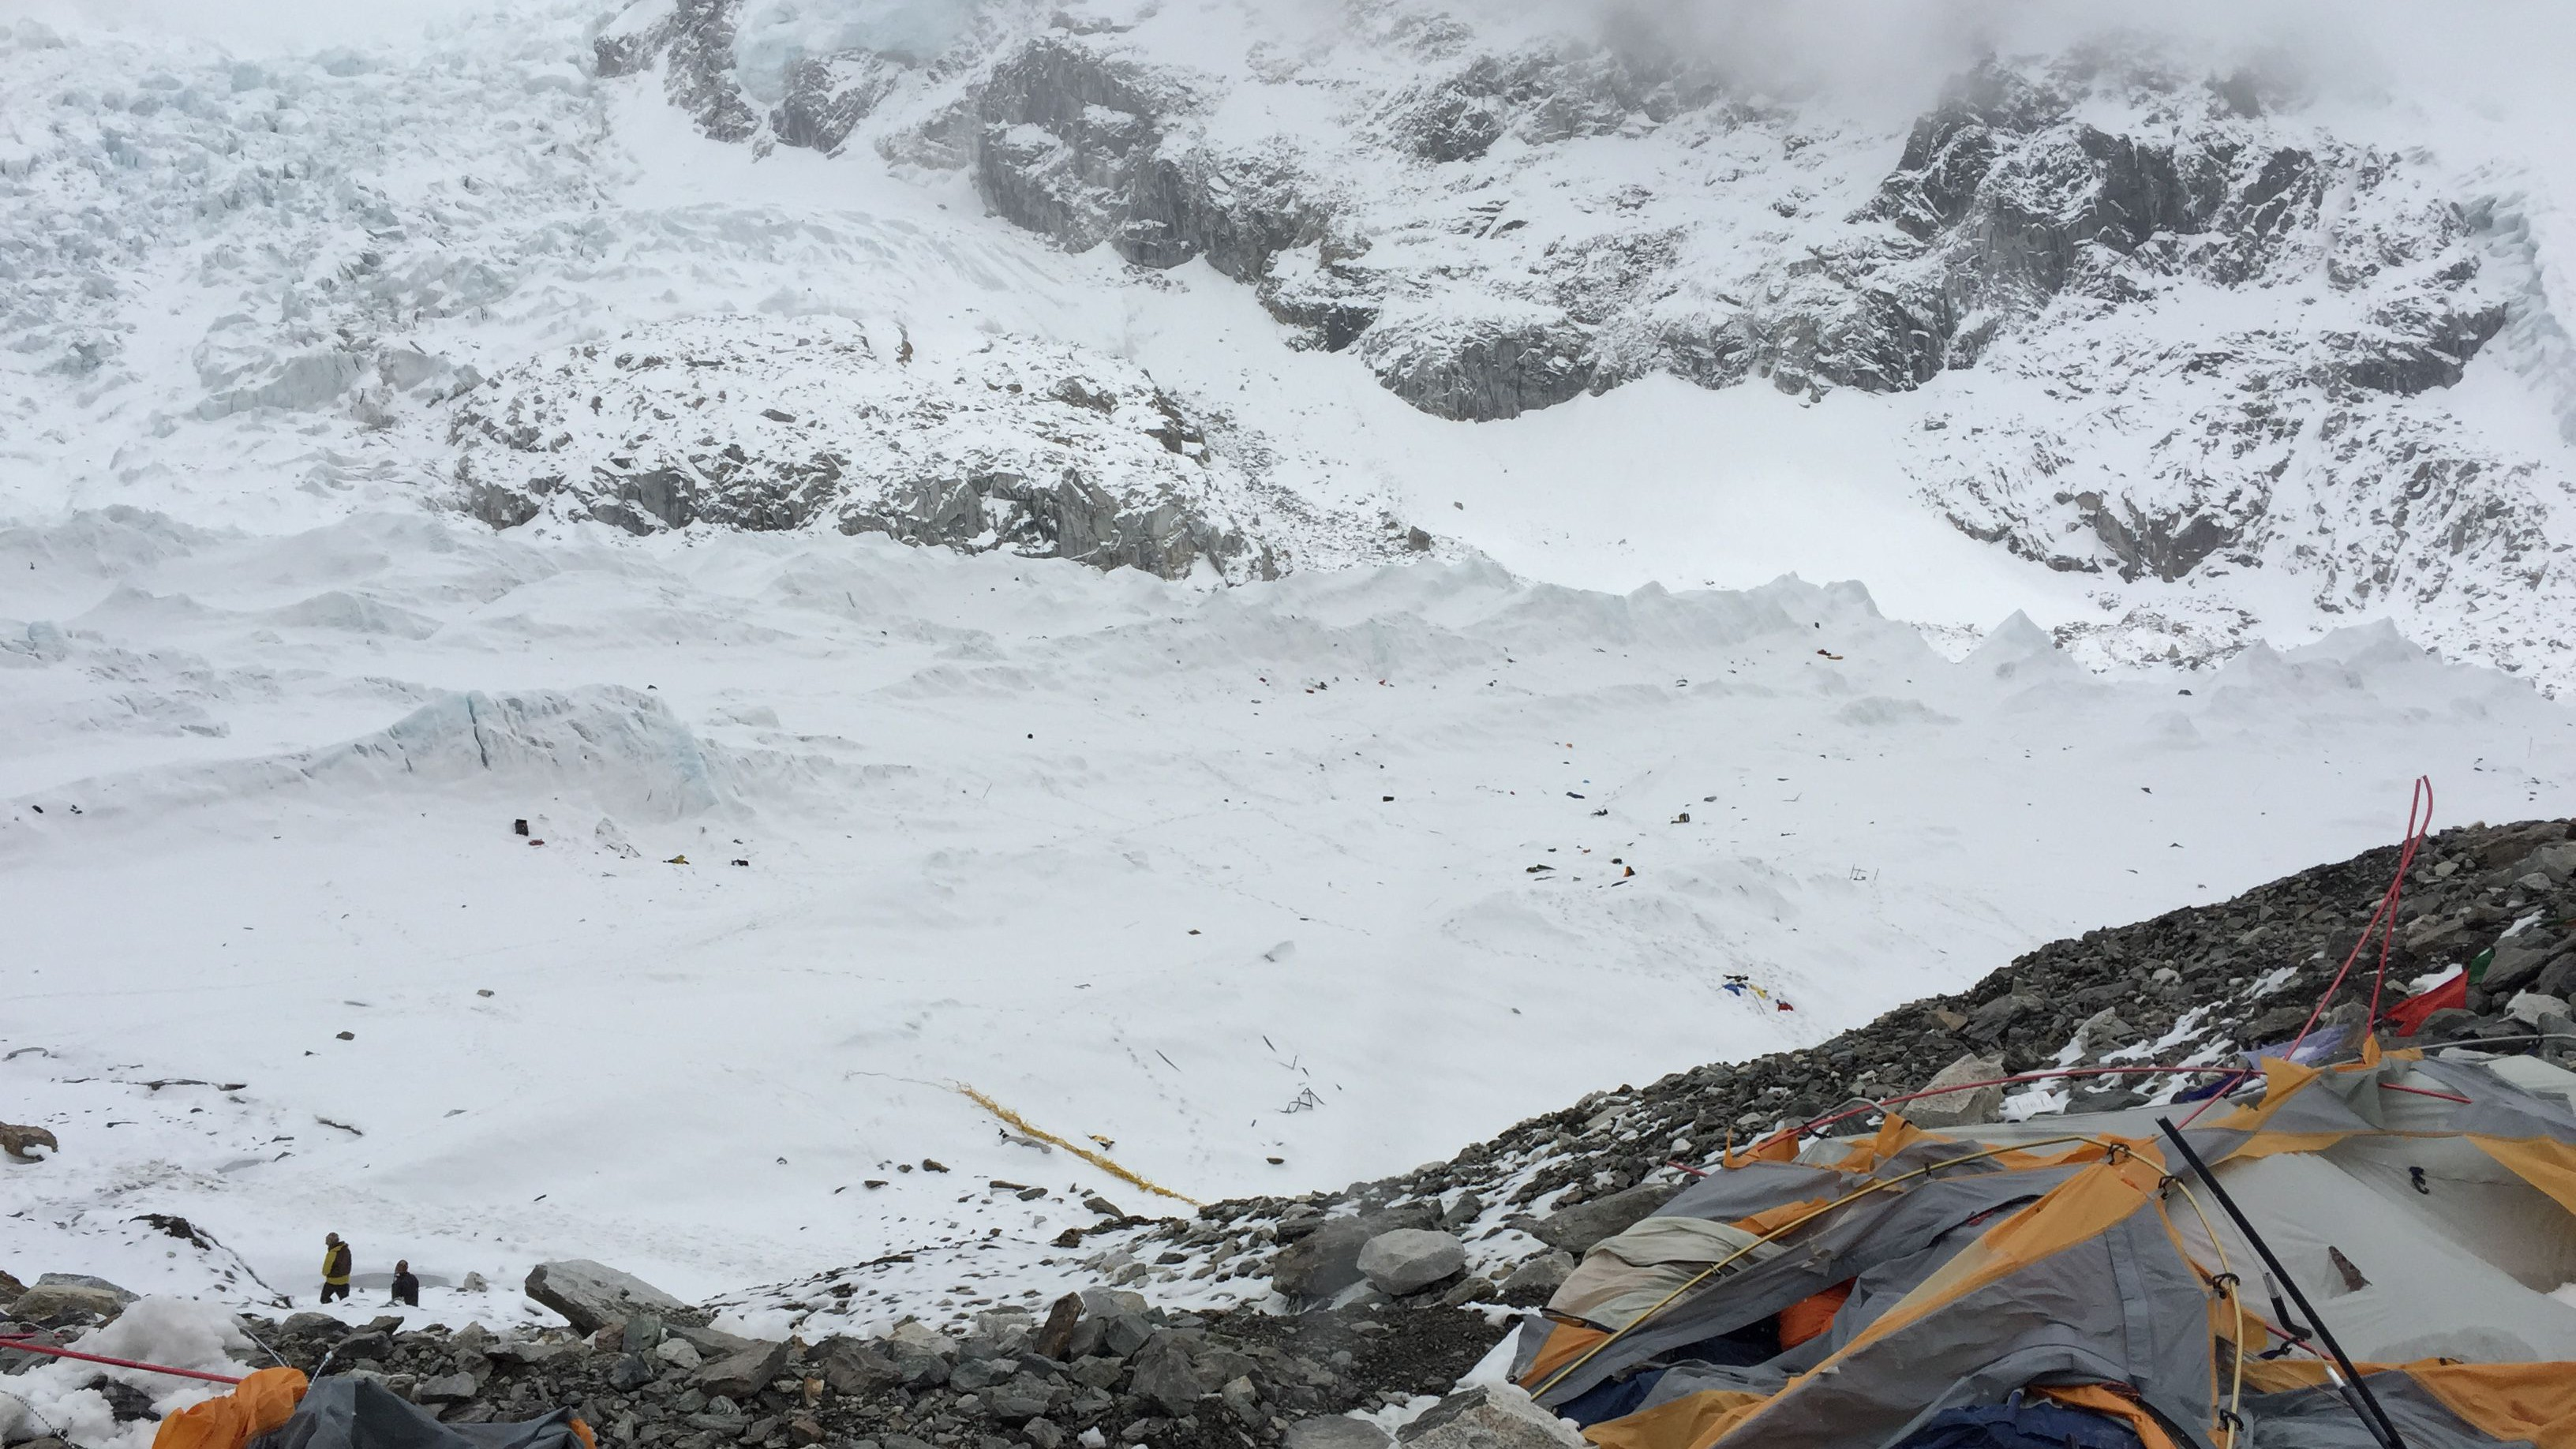 The wind from the avalanche blew debris onto the far reaches of the Khumbu glacier